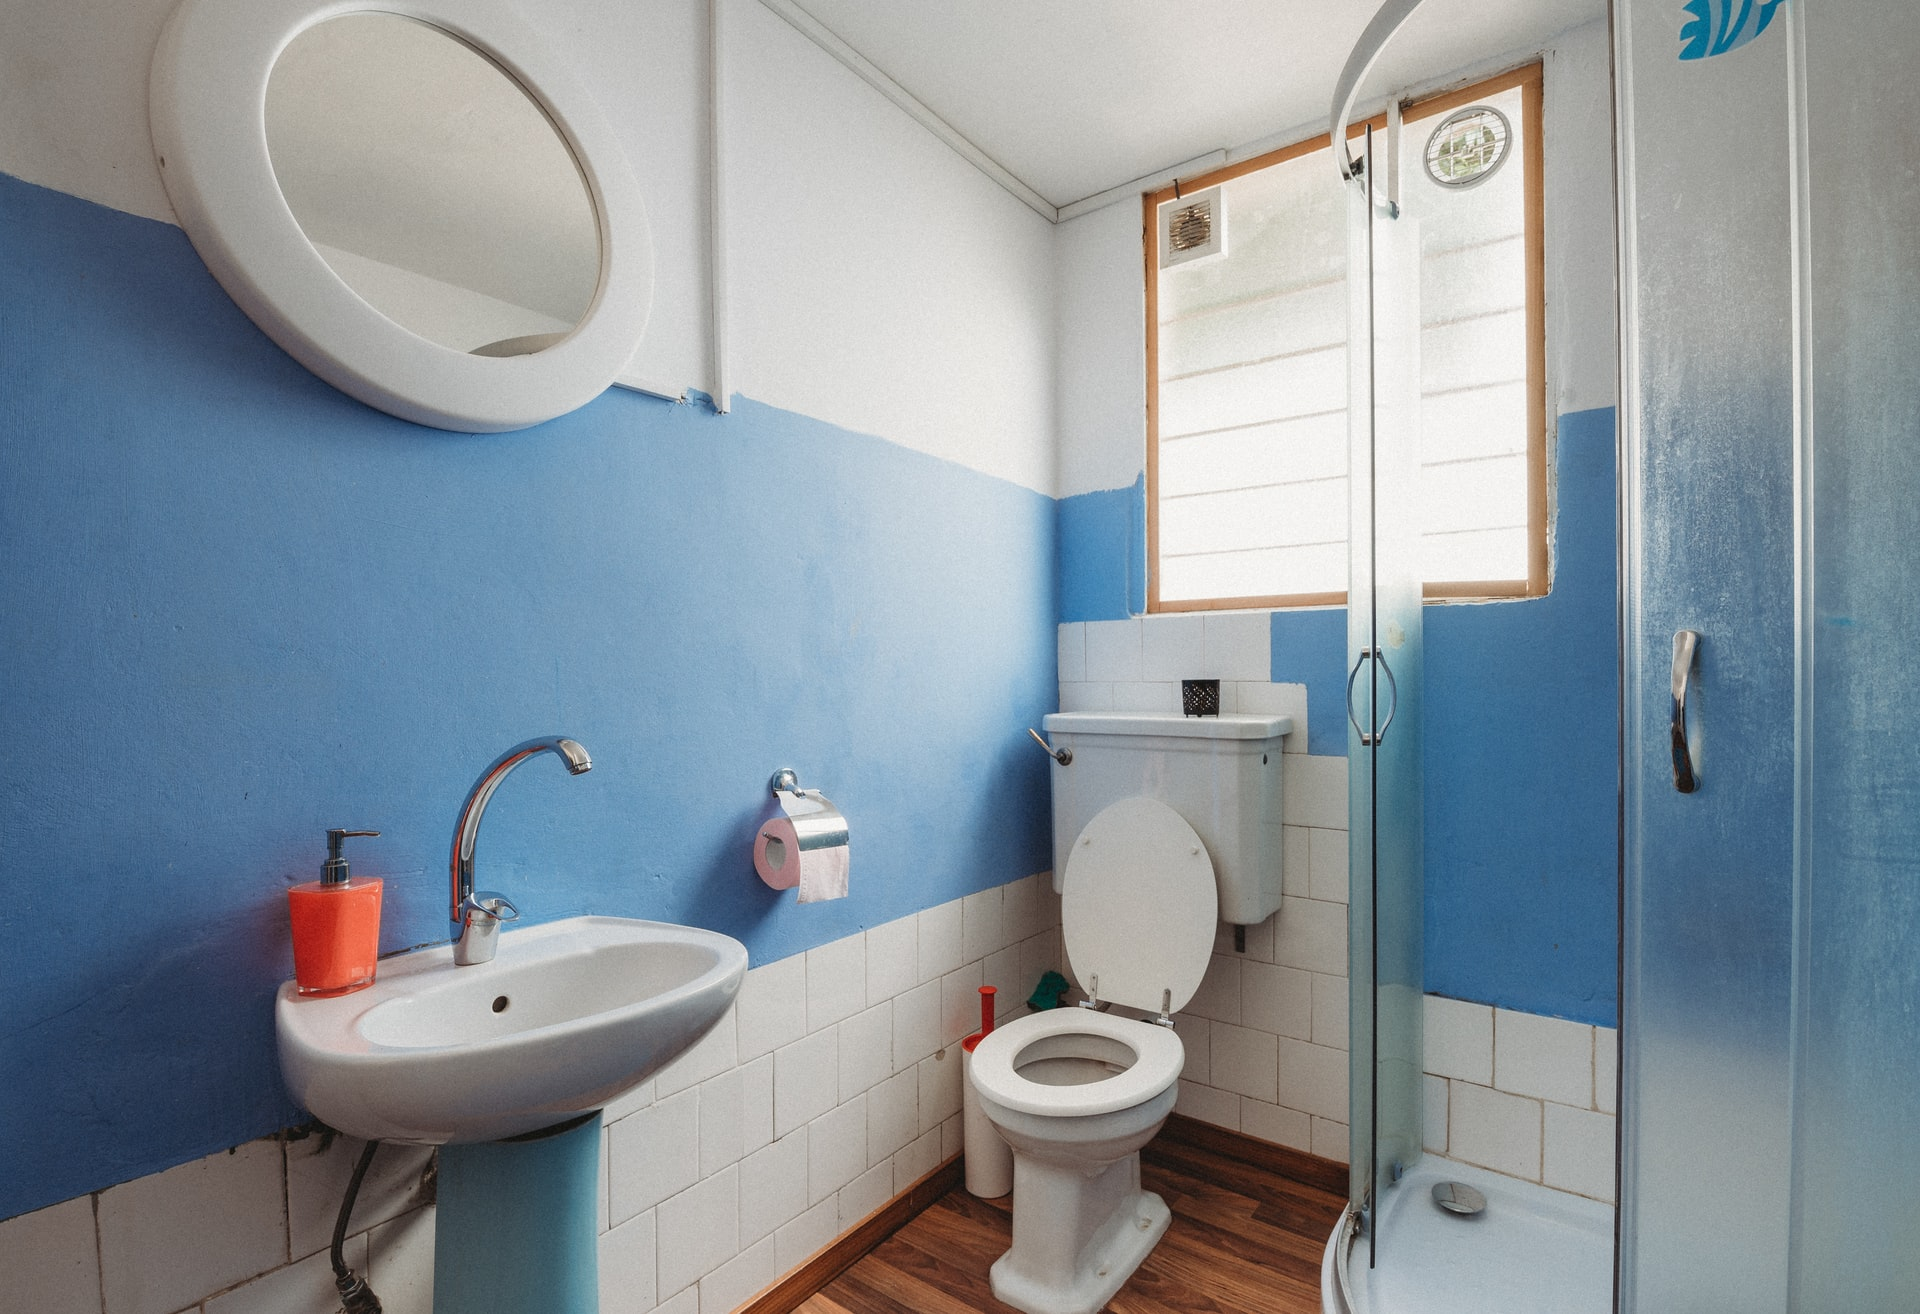 bathroom with a toilet, sink, tub, and a leaky faucet.